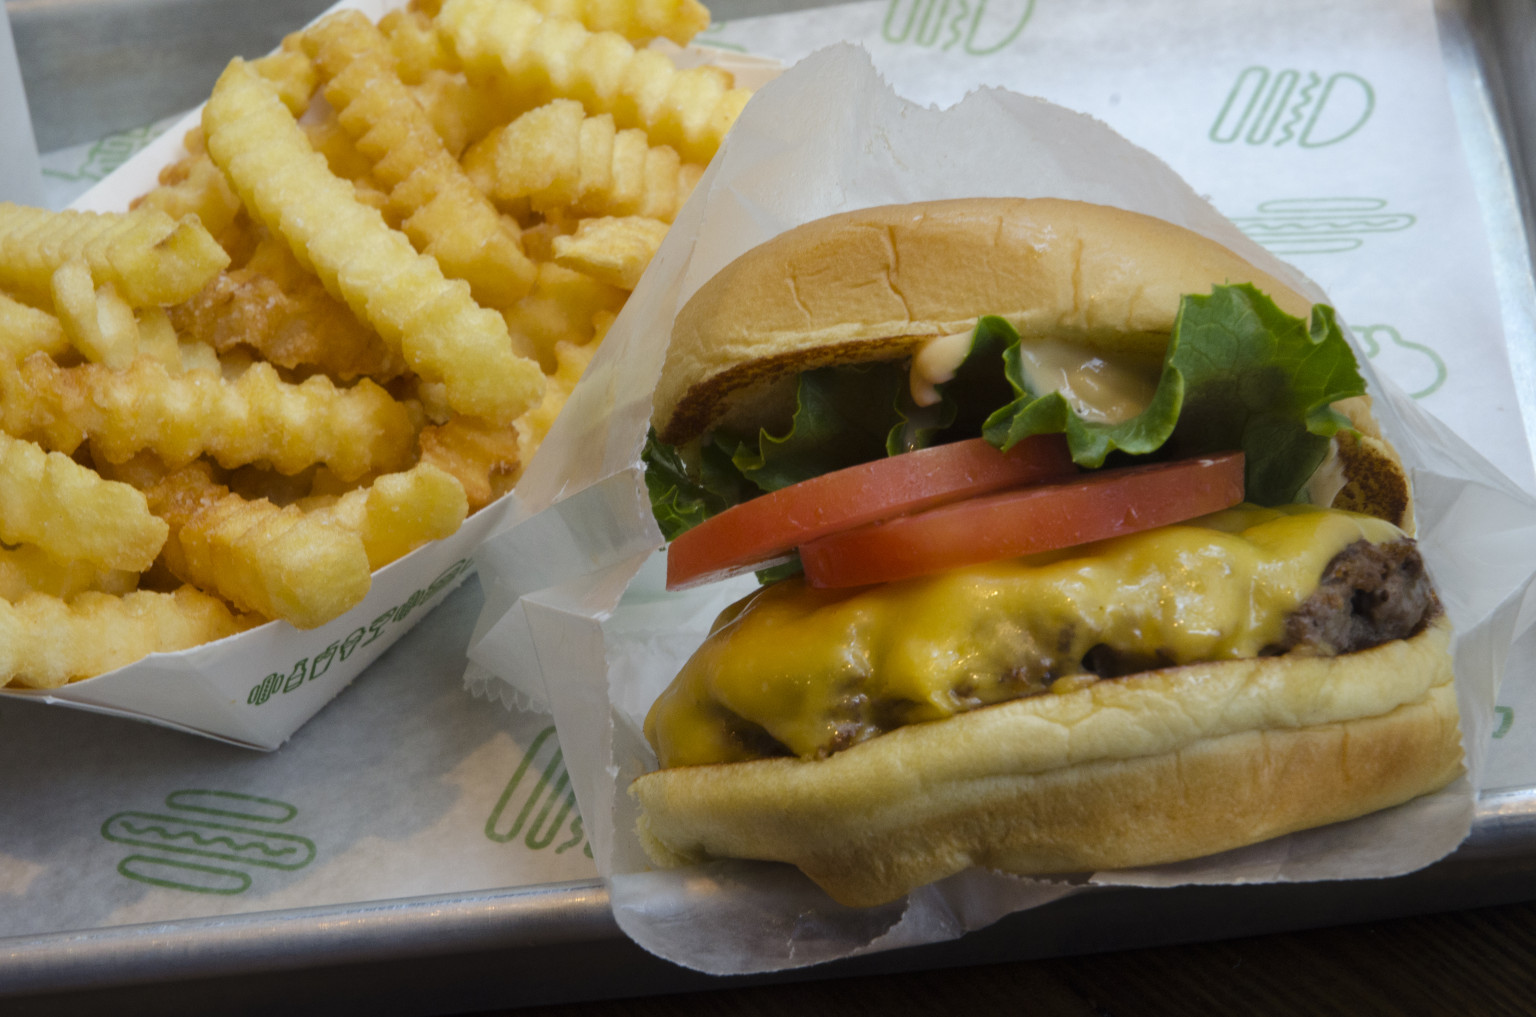 Crédito foto: http://www.huffingtonpost.com/2014/03/21/shake-shack-pay-workers_n_5006580.html